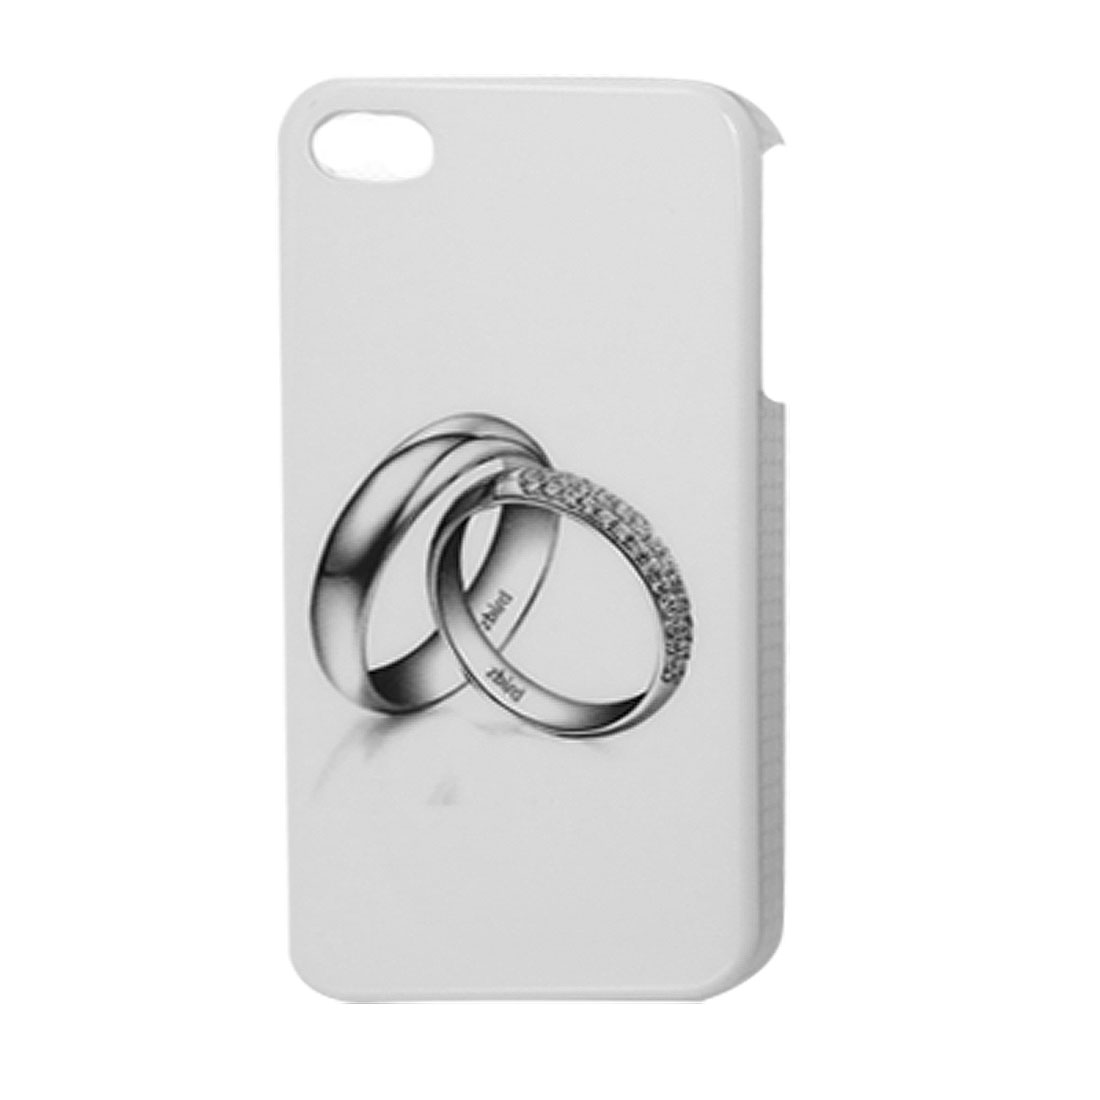 Double Rings Print Hard Plastic IMD Back Cover Guard White for iPhone 4 4G 4S